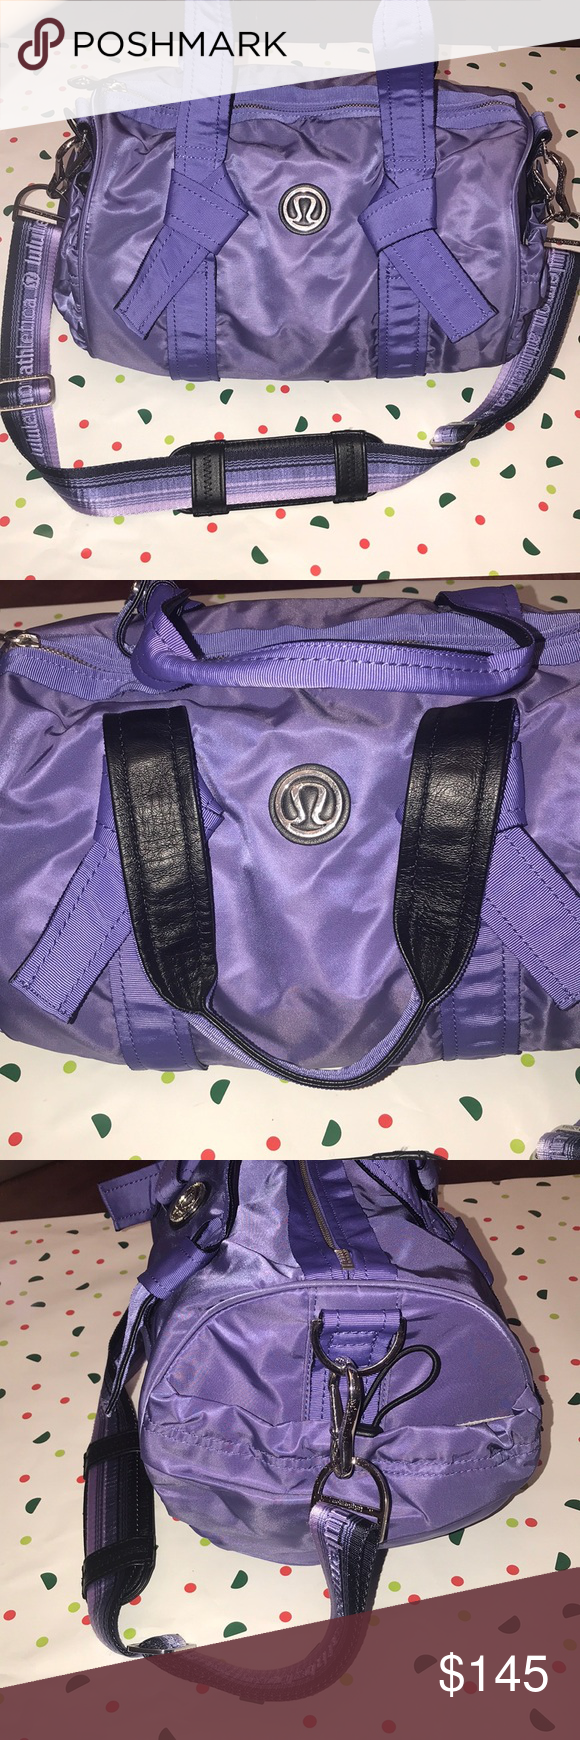 "b371e5f59cd *RARE* Lululemon DTB duffel bag Lululemon DTB duffel bag in the color ""Persian  purple"" In excellent condition! A rare lululemon find! lululemon athletica  ..."